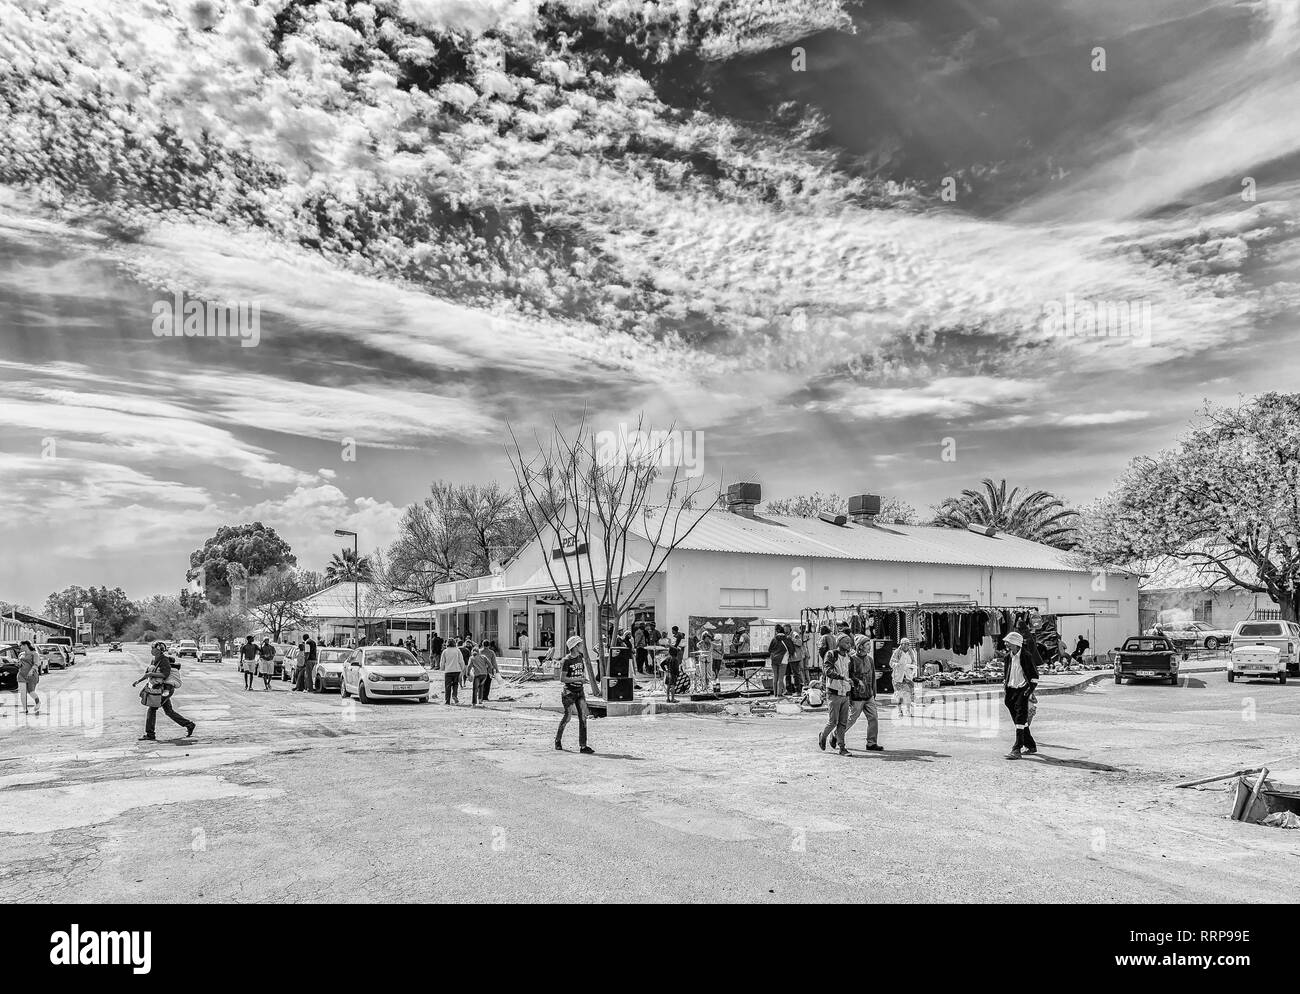 HOPETOWN, SOUTH AFRICA, SEPTEMBER 1, 2018: A street scene, with a businesses, vehicles and people, in Hopetown in the Northern Cape Province. Monochro - Stock Image